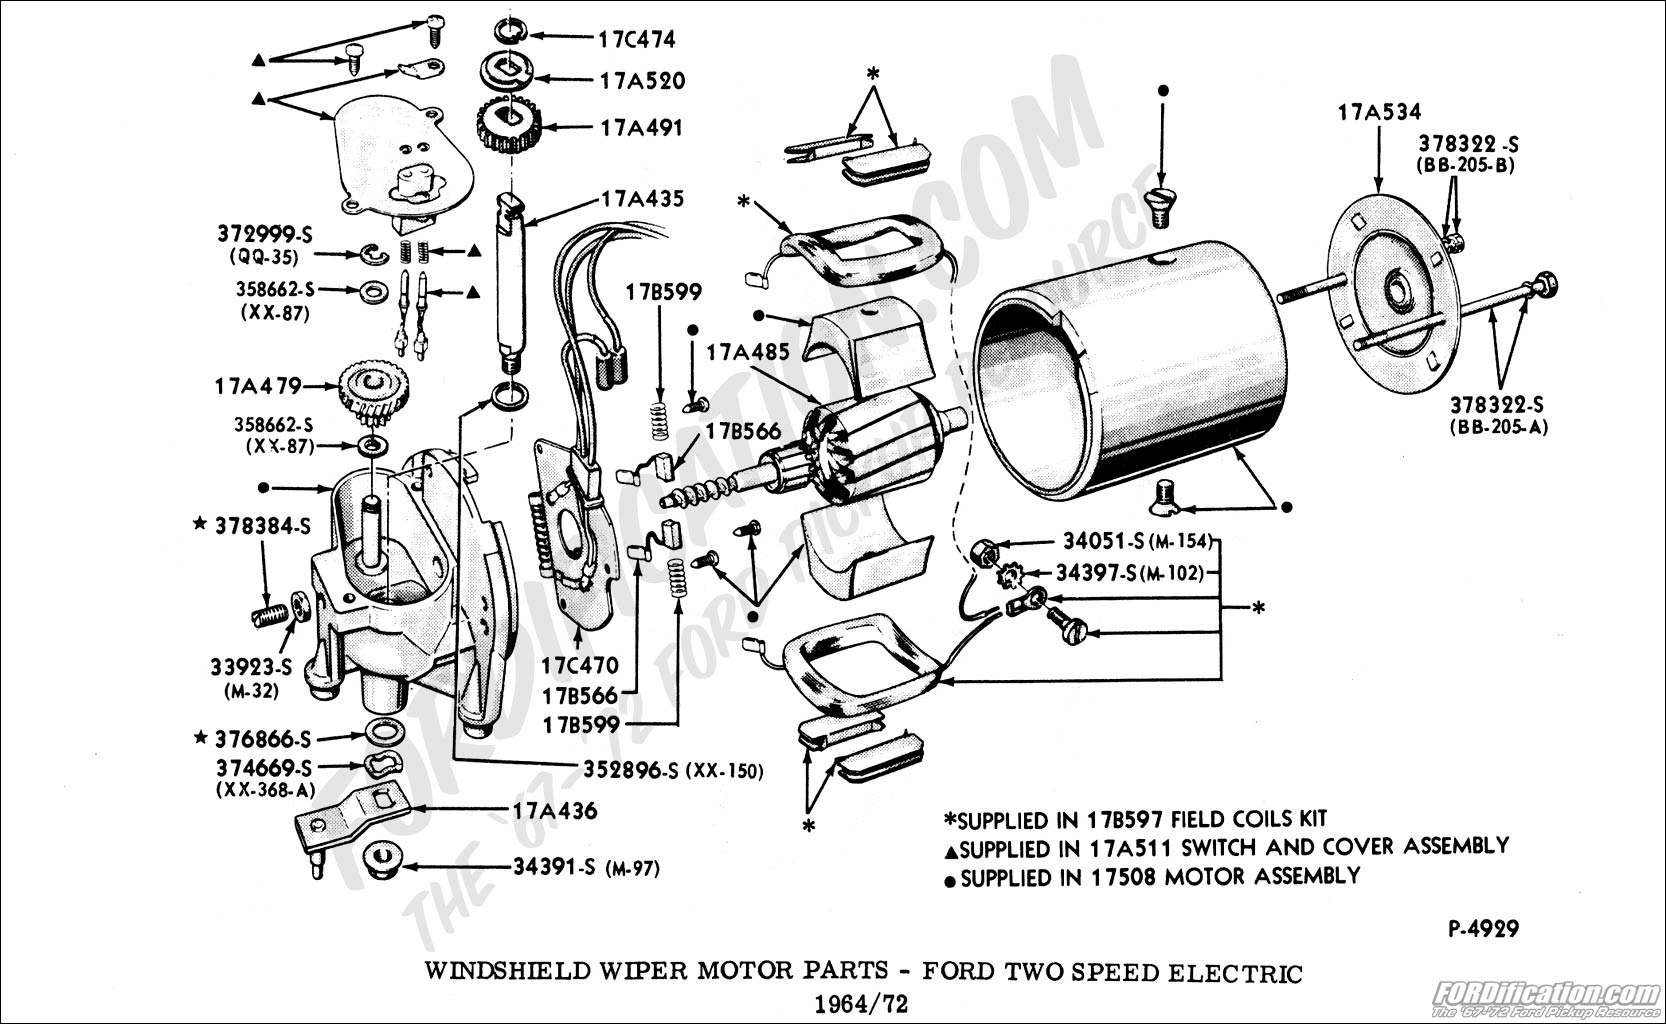 55 Chevy Wiper Cable Diagram